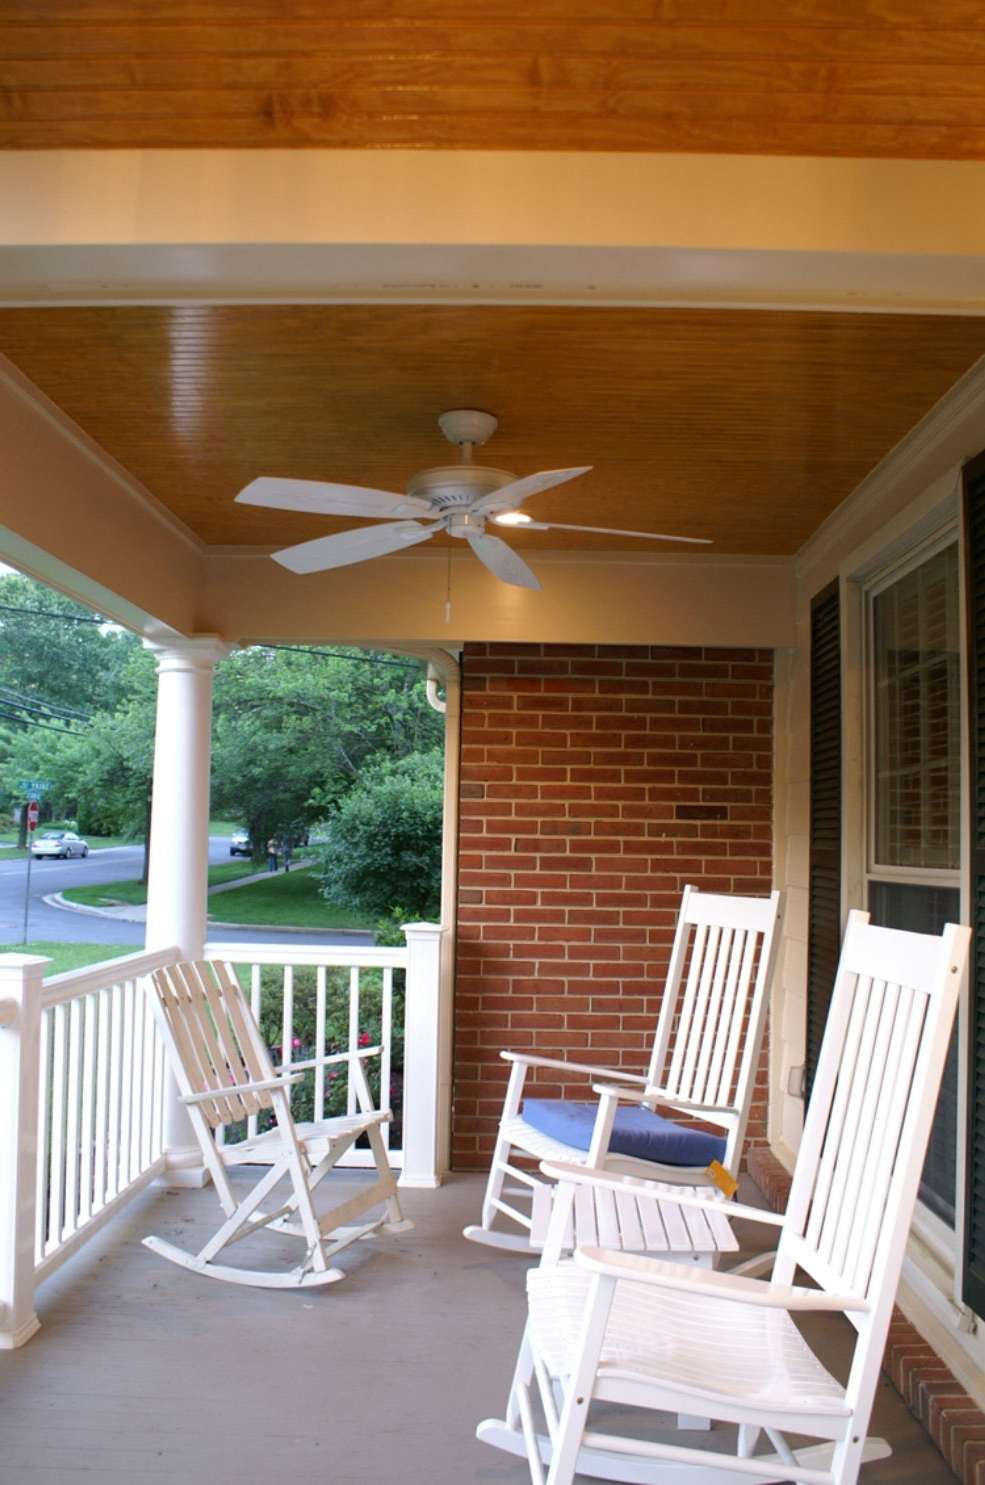 Most Recently Released Outdoor Patio Ceiling Fans With Lights For Gorgeous Outdoor Patio Ceiling Fans Pleasant Porch Home Furniture (View 7 of 20)